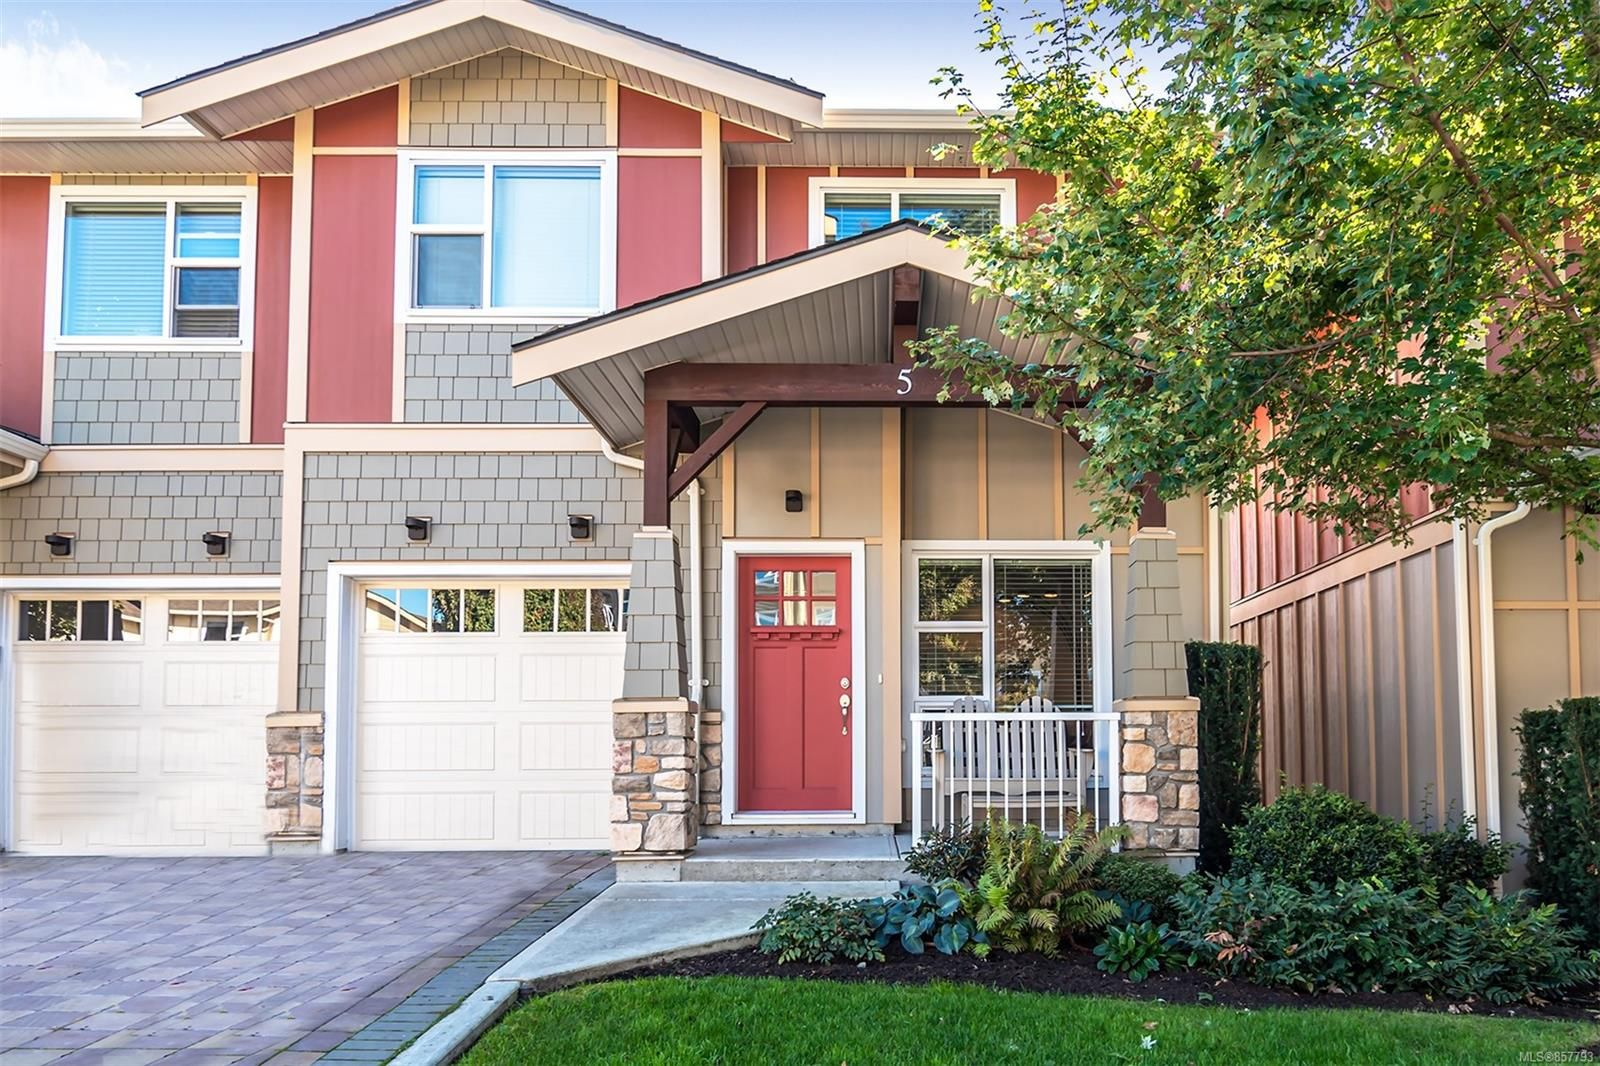 Main Photo: 5 1900 Watkiss Way in : VR View Royal Row/Townhouse for sale (View Royal)  : MLS®# 857793